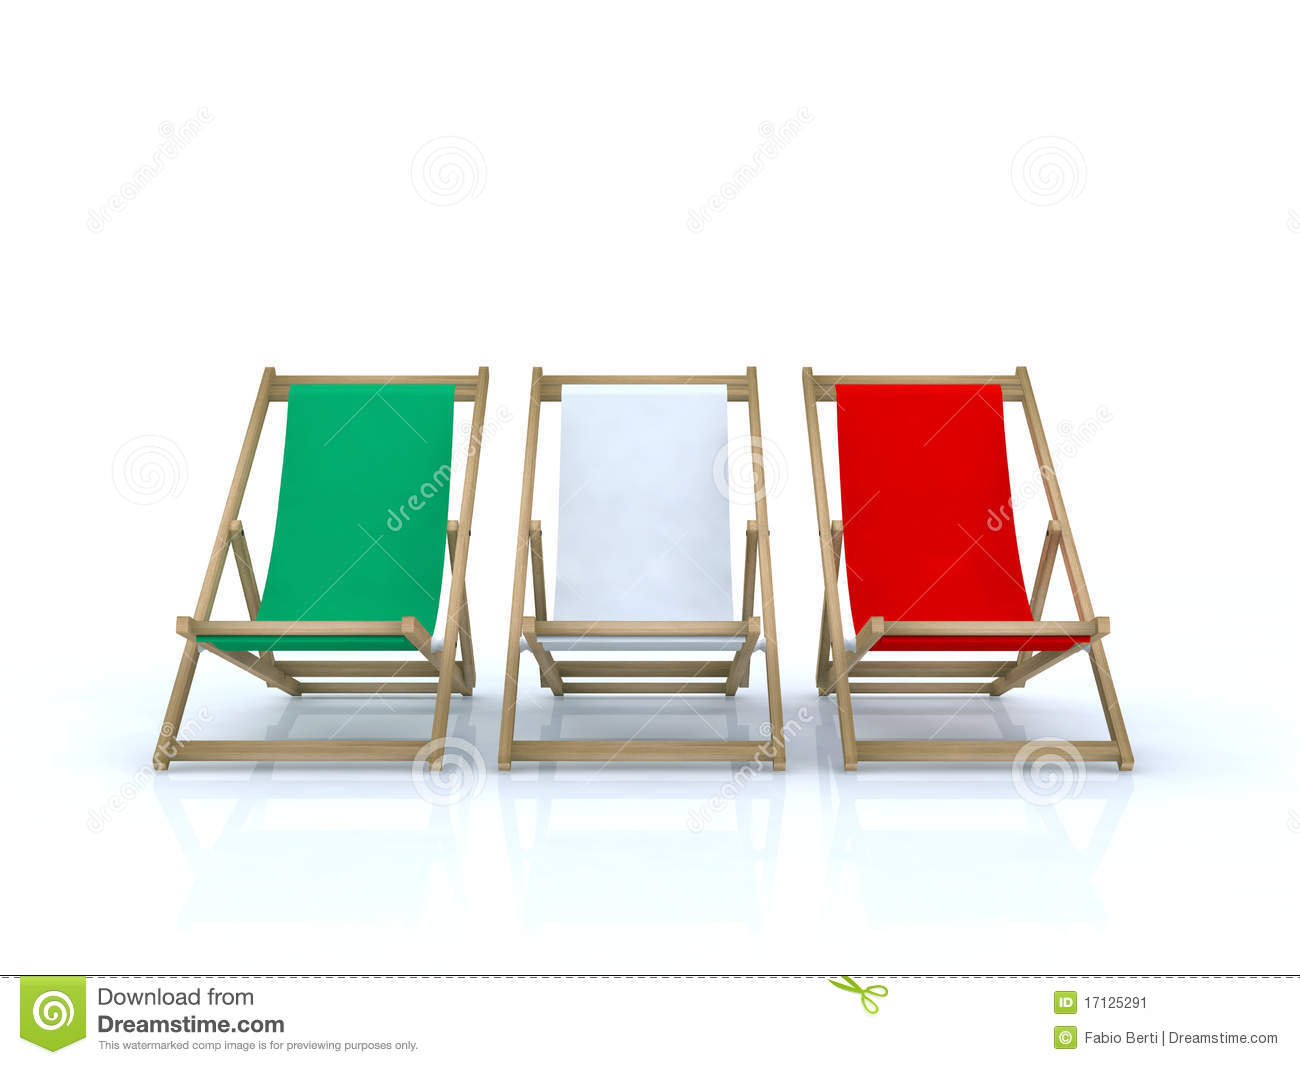 Wood Beach Chairs Italian Flag Stock Image - Image: 17125291